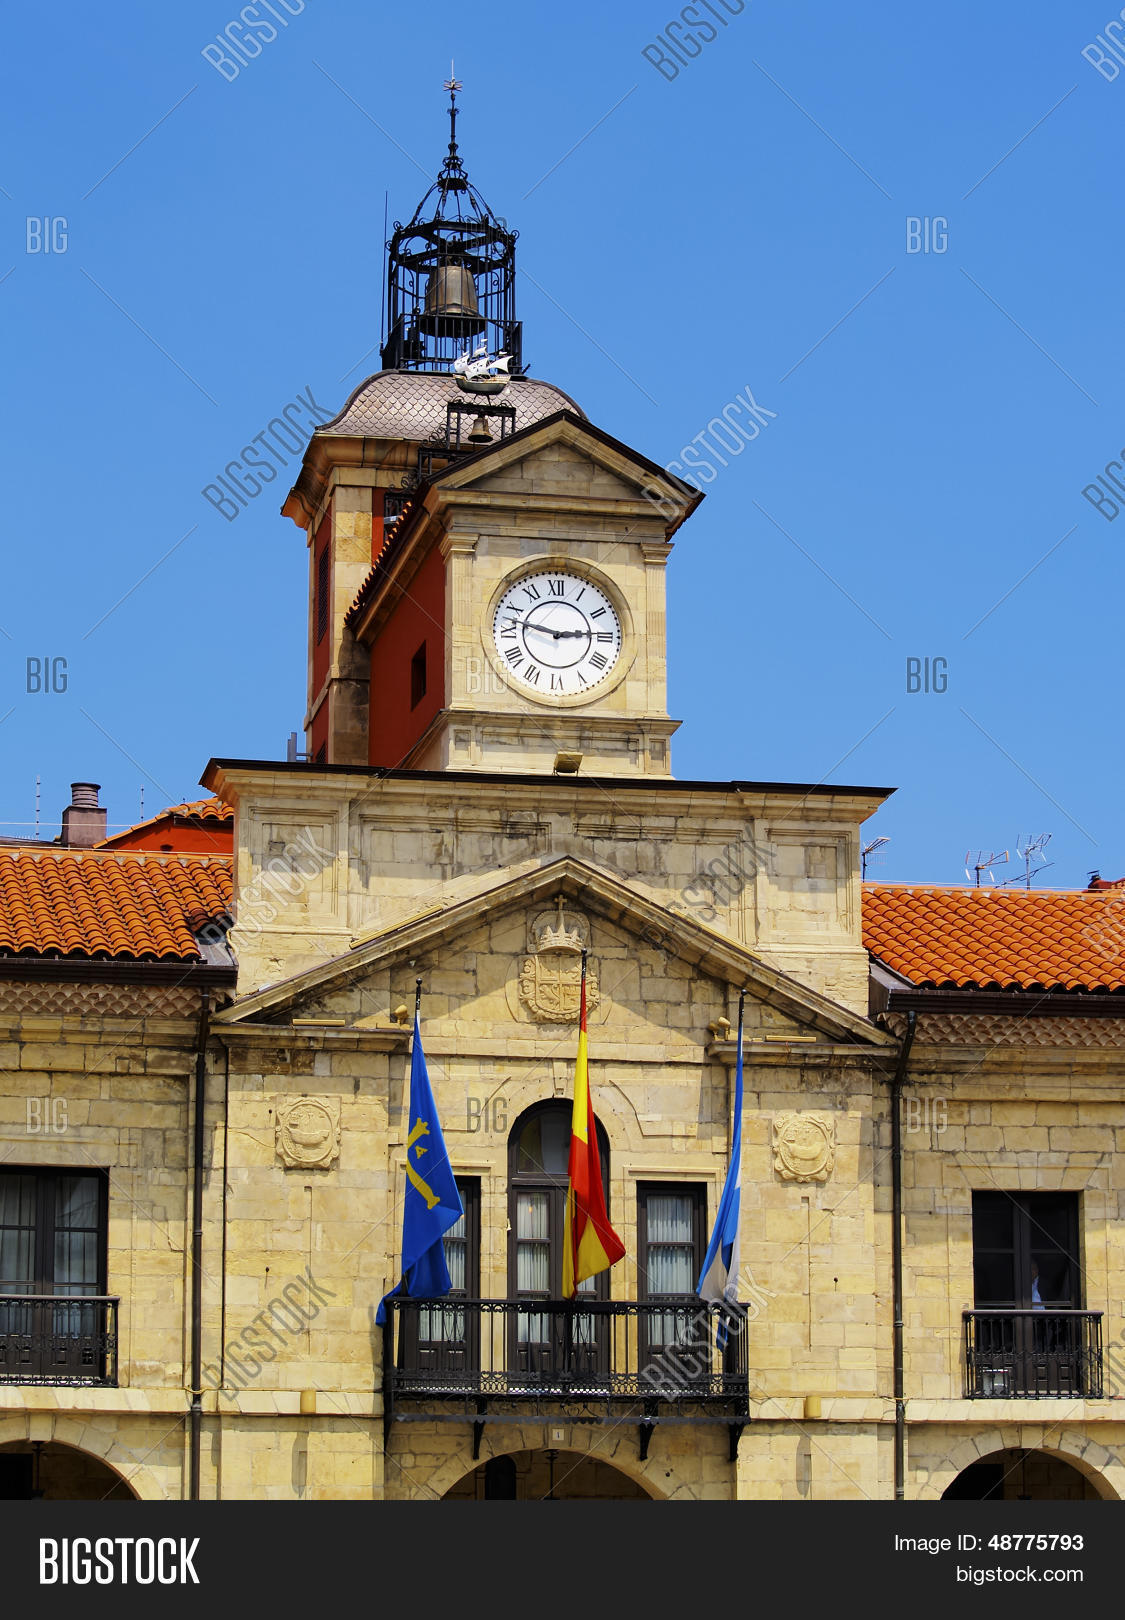 City Hall in Aviles Asturias Region Spain